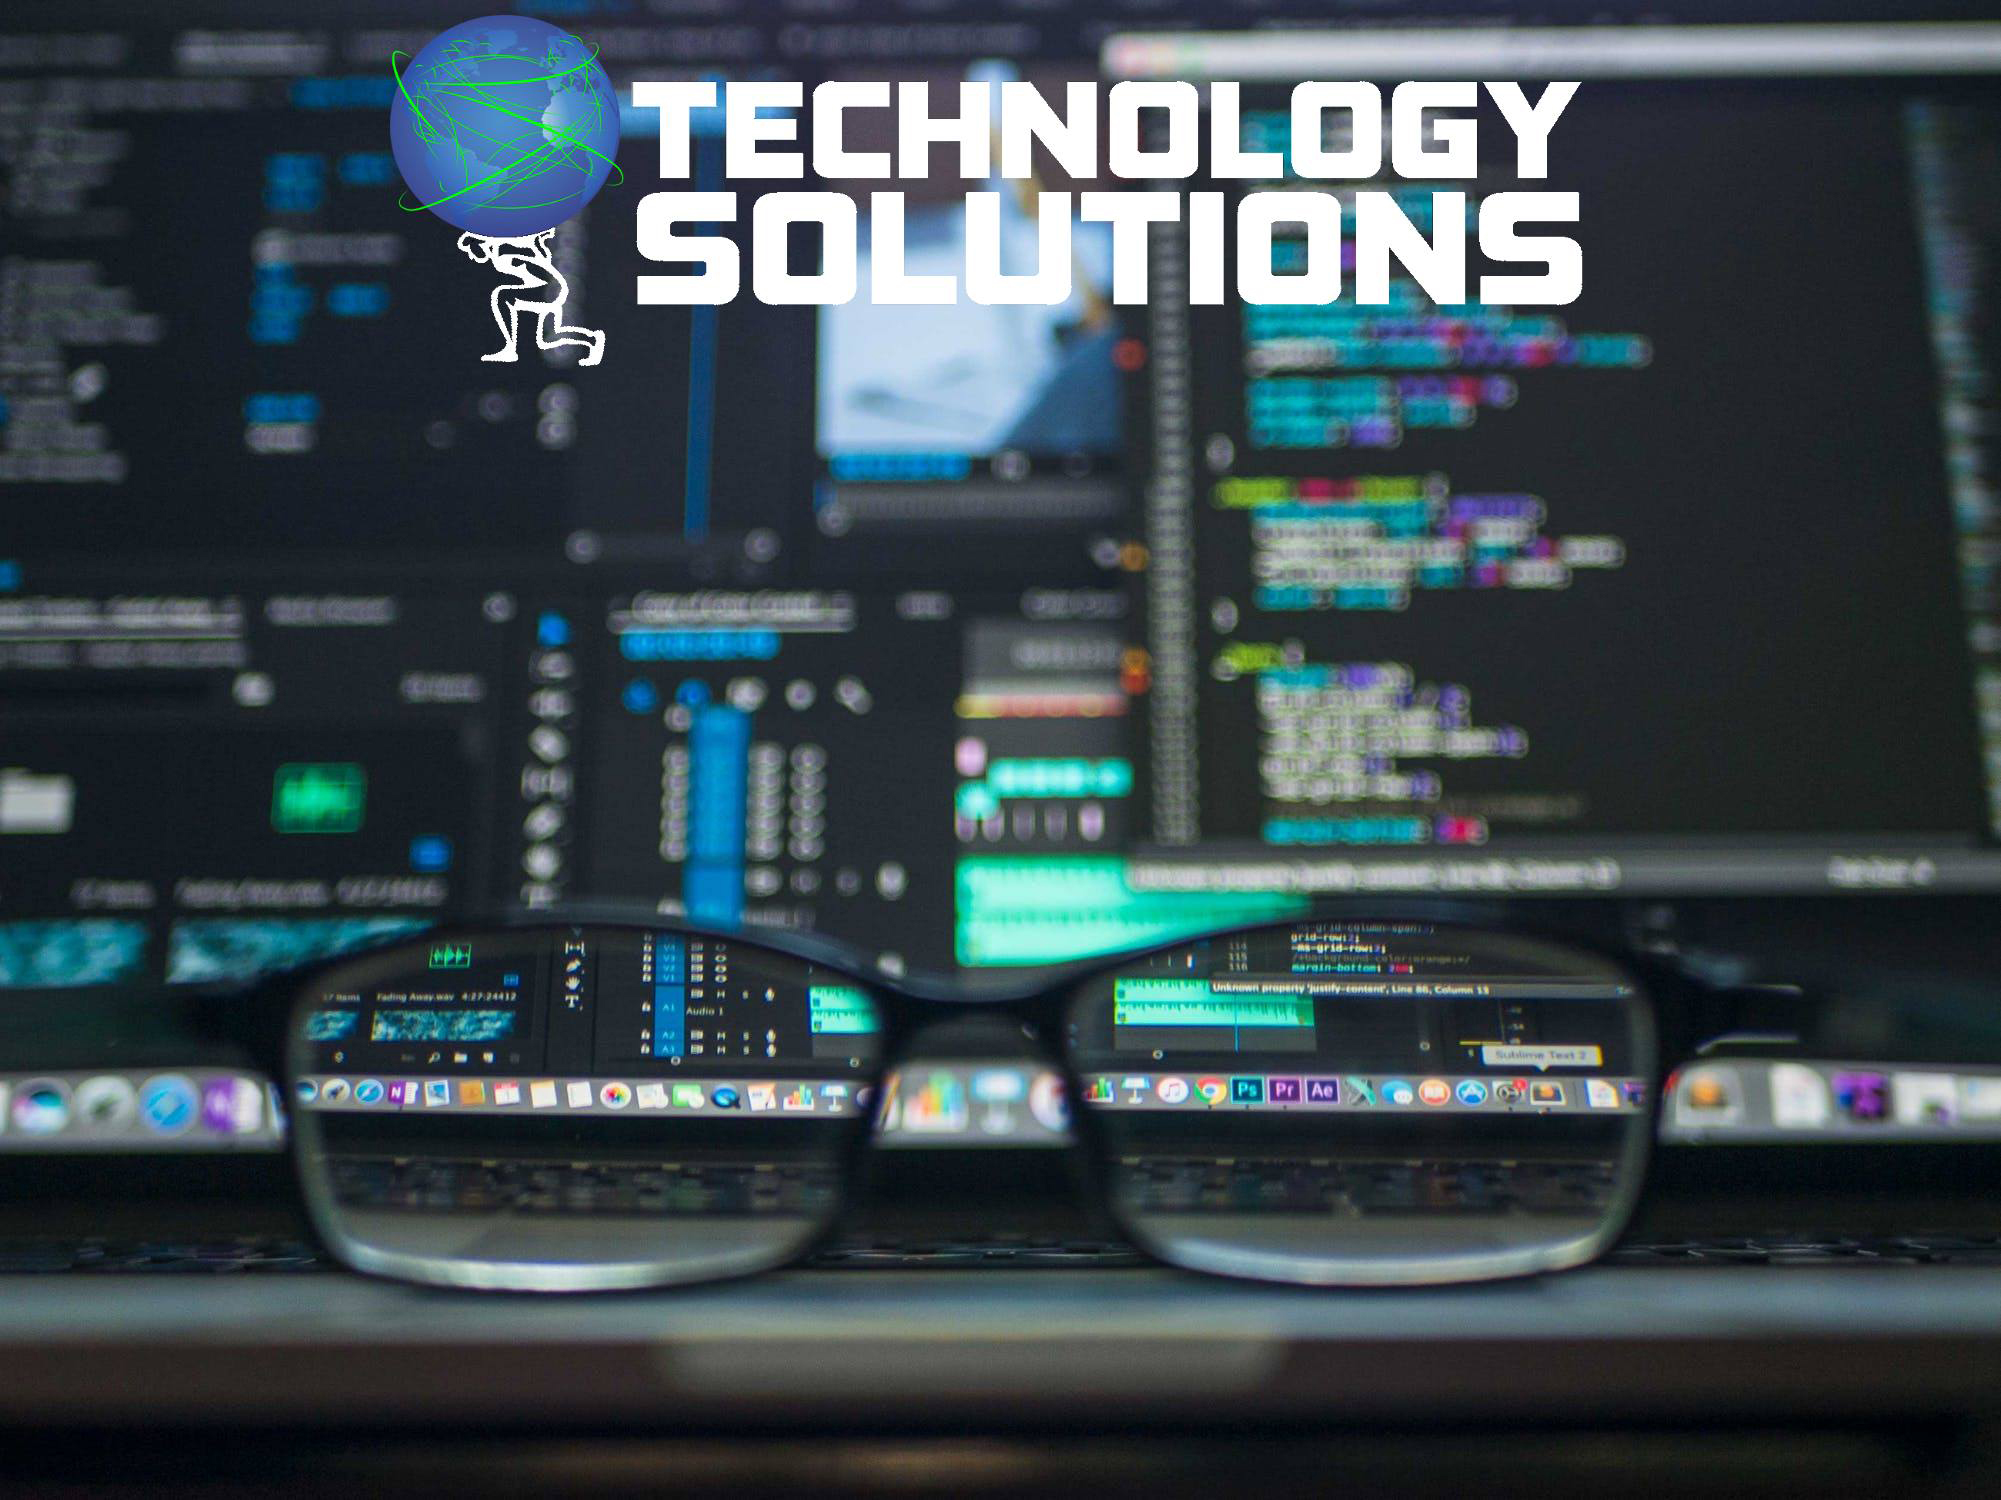 Technology Solutions MSP, Inc